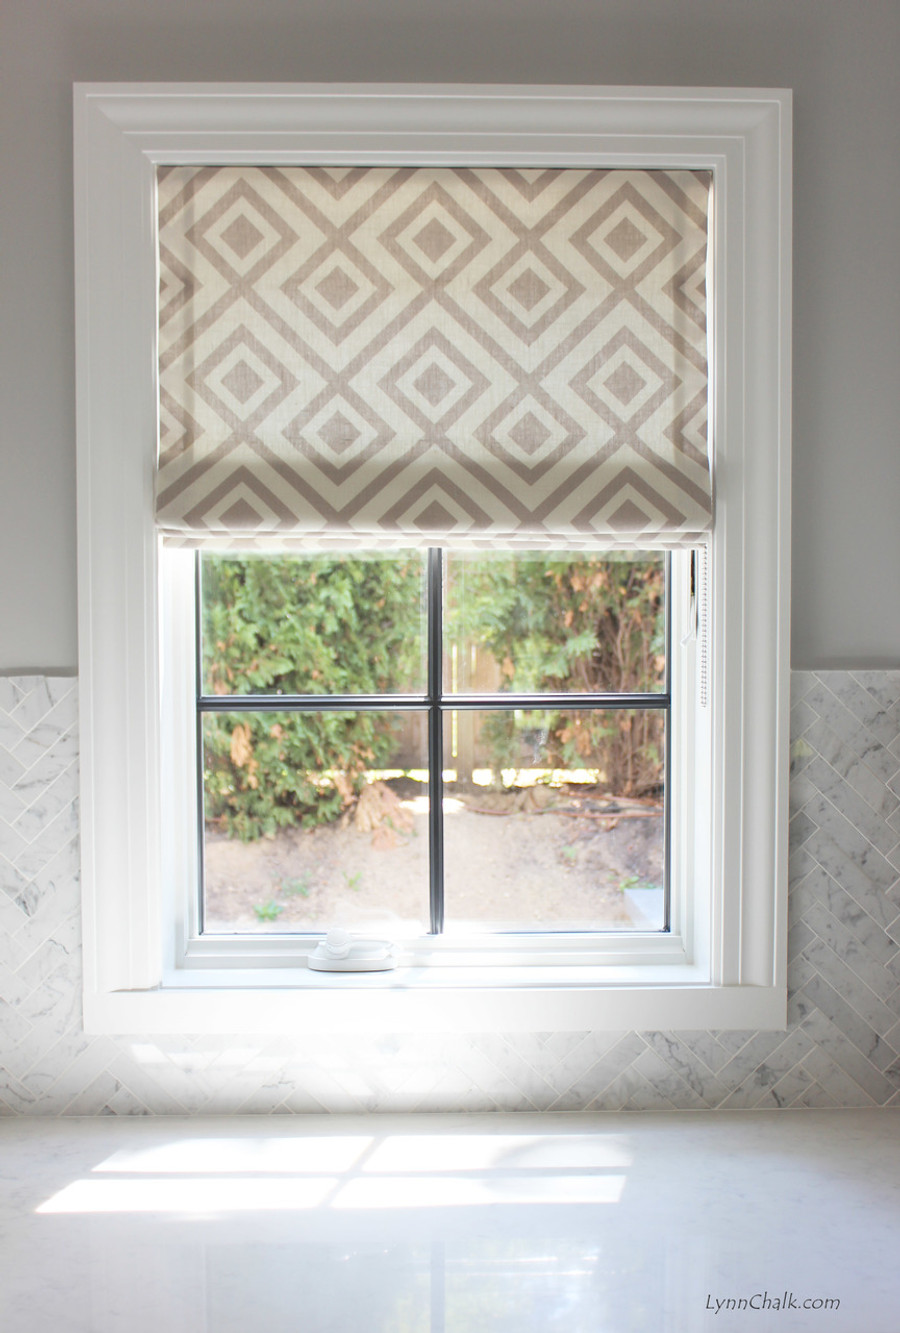 Roman Shade in La Fiorentina Lighter Grey with Off White Background.